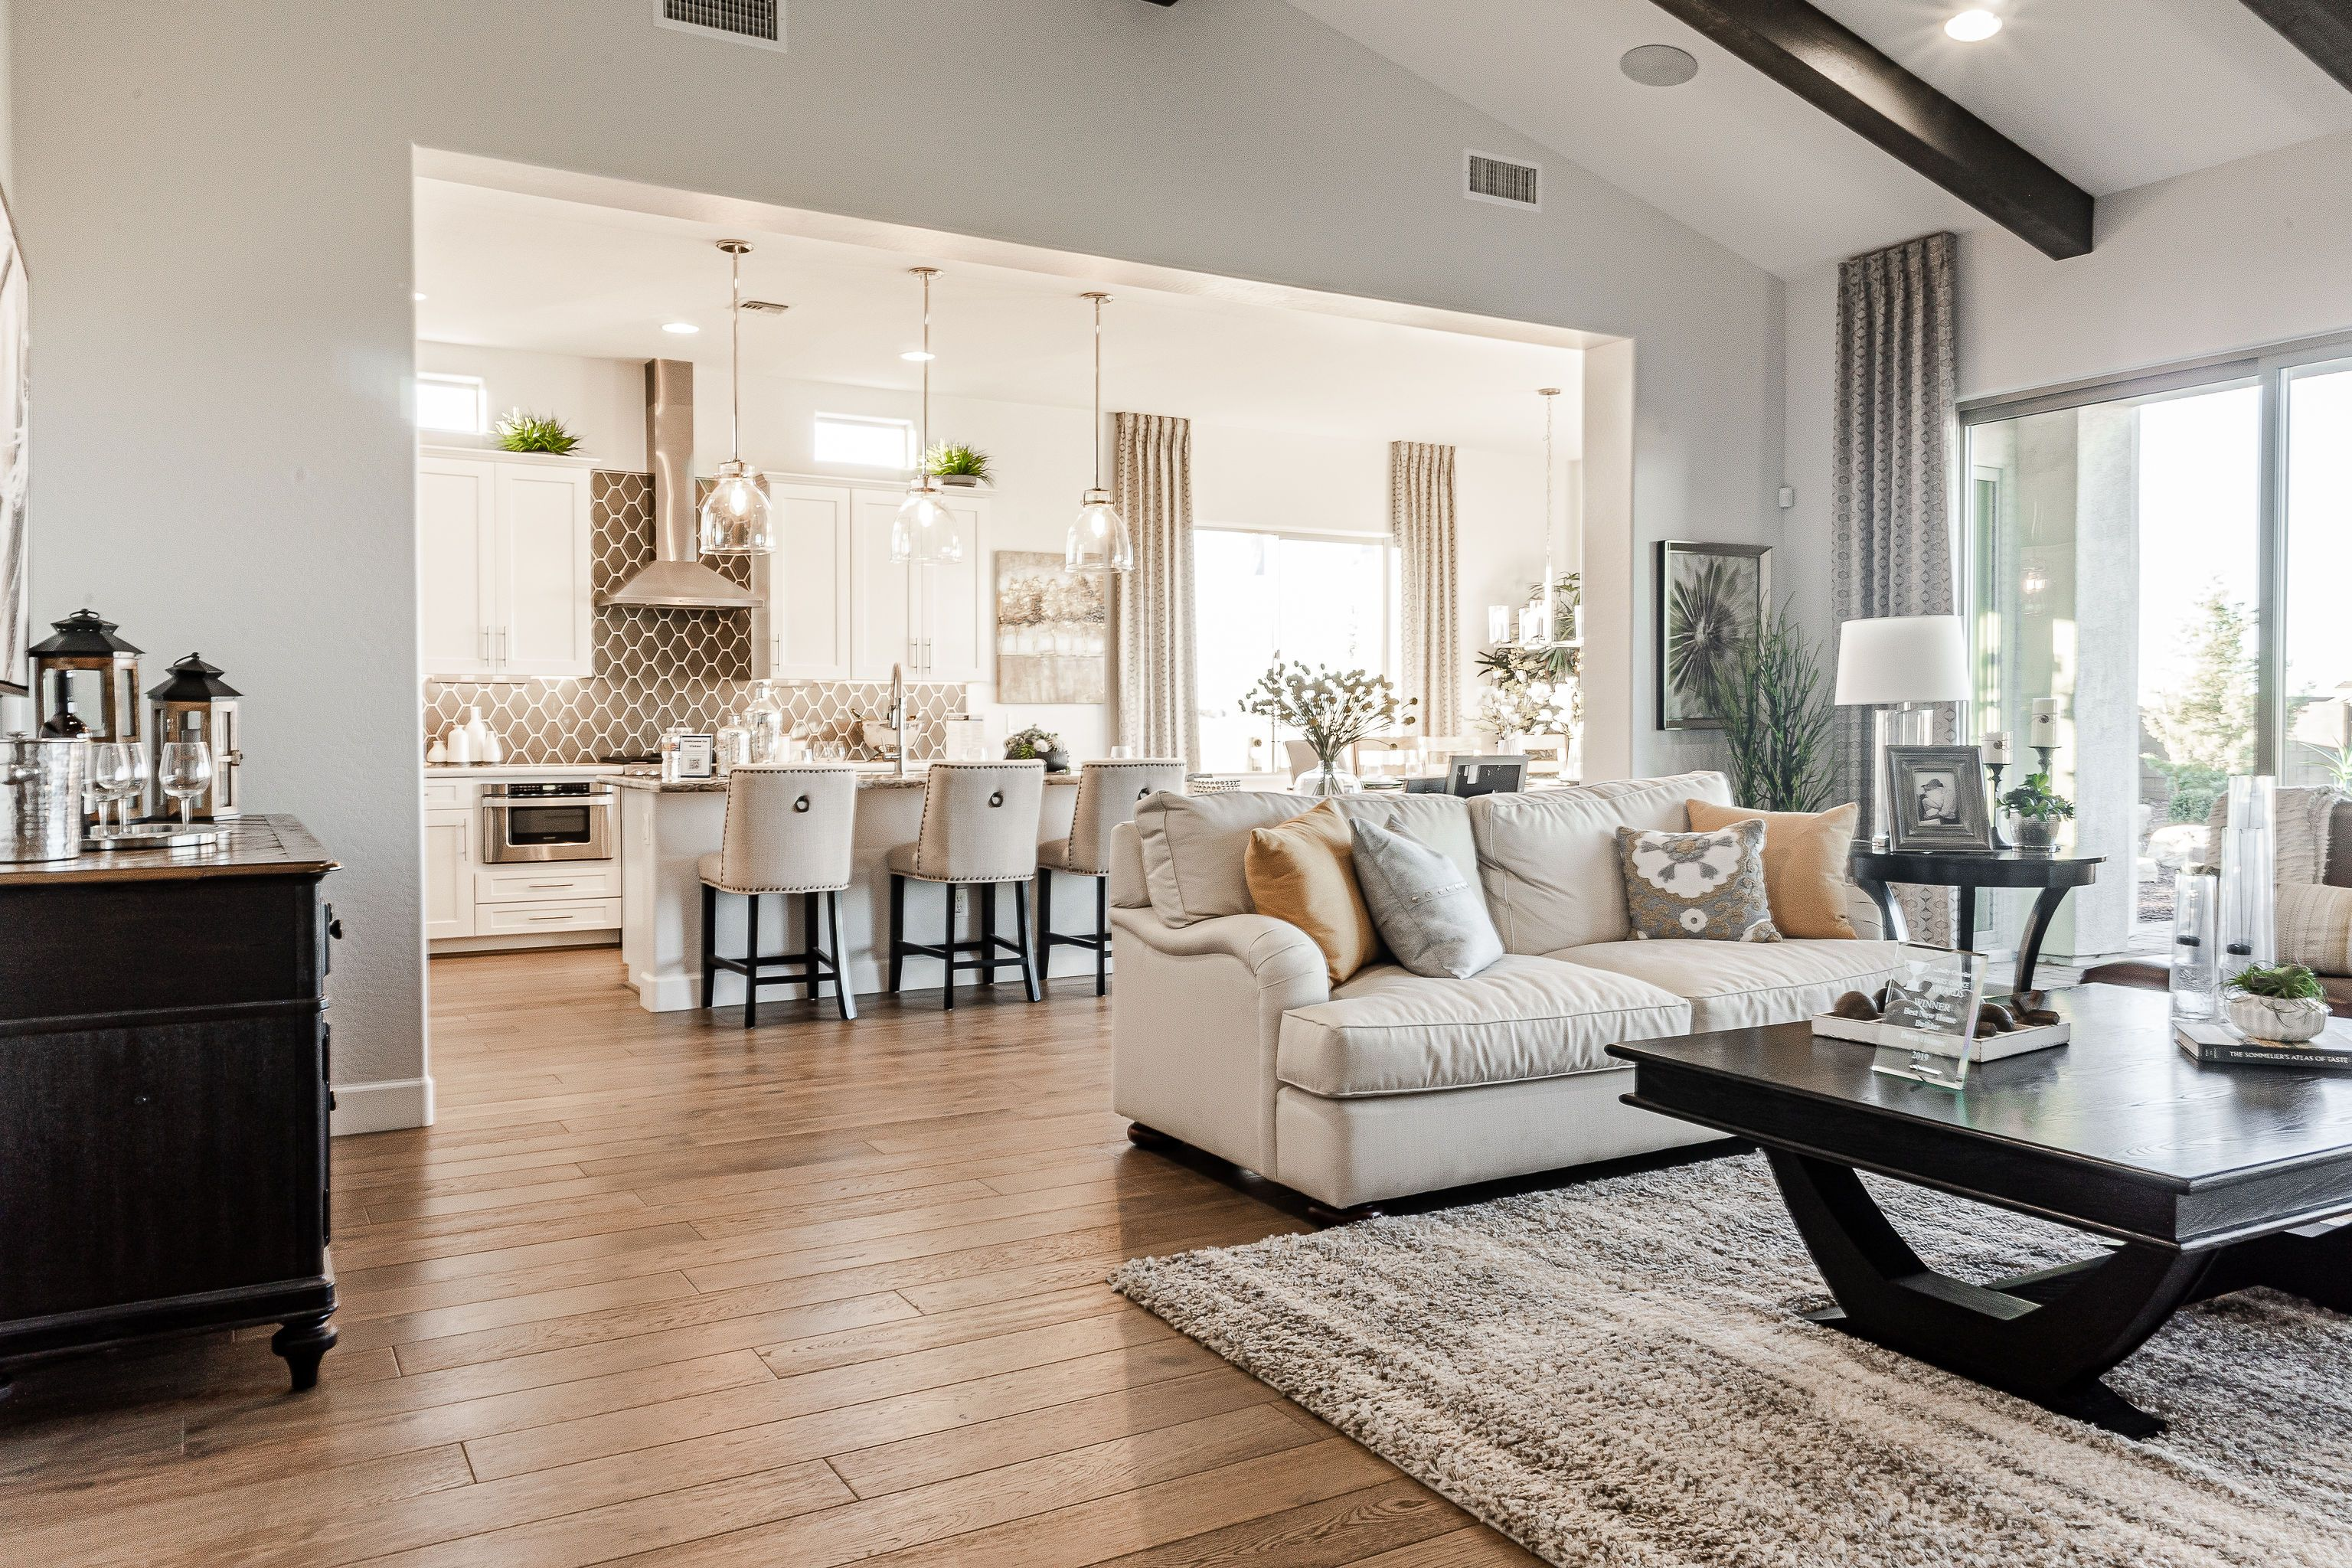 Living Area featured in the Keystone By Dorn Homes  in Prescott, AZ